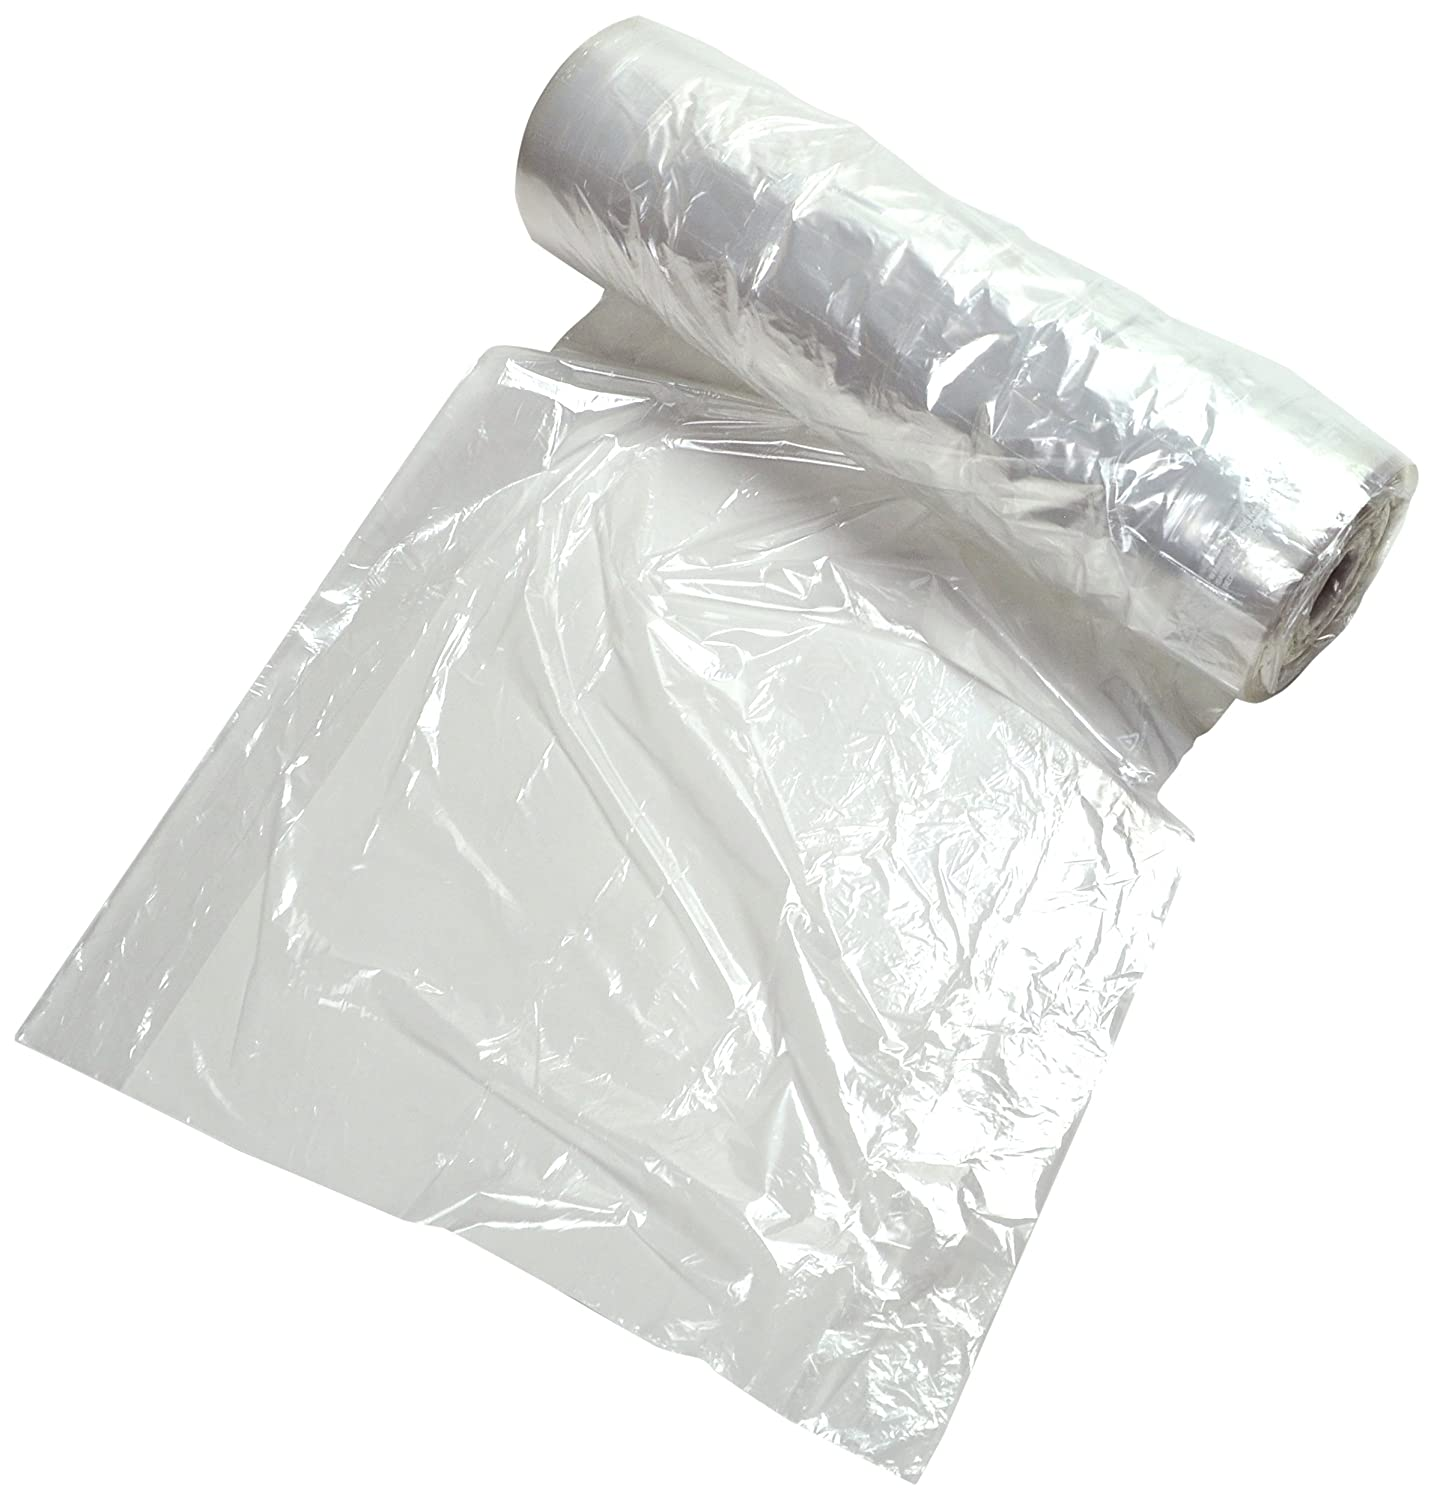 Roll of 386 20 x 42 Dress Clear 20 x 42 Elkay Plastics I7542 0.75 mil Garment Bag on Roll